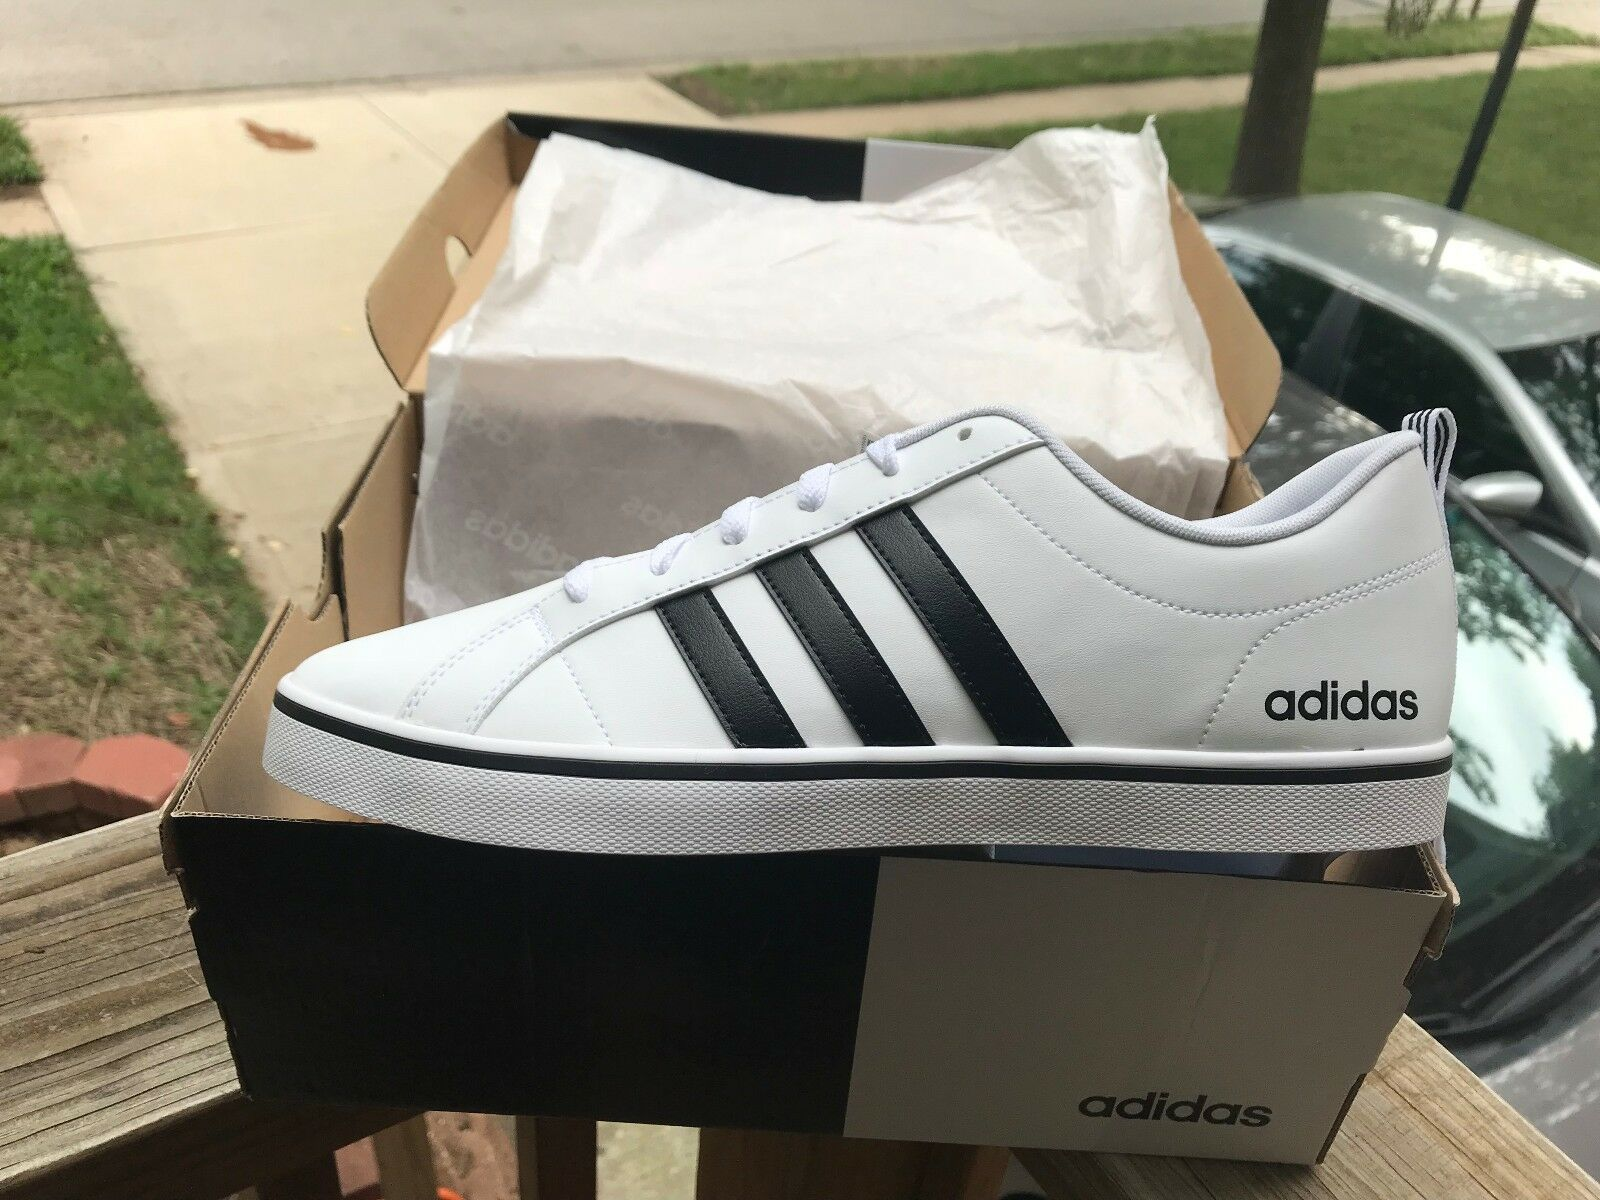 Adidas Pace VS Mens Trainers Size 10.5